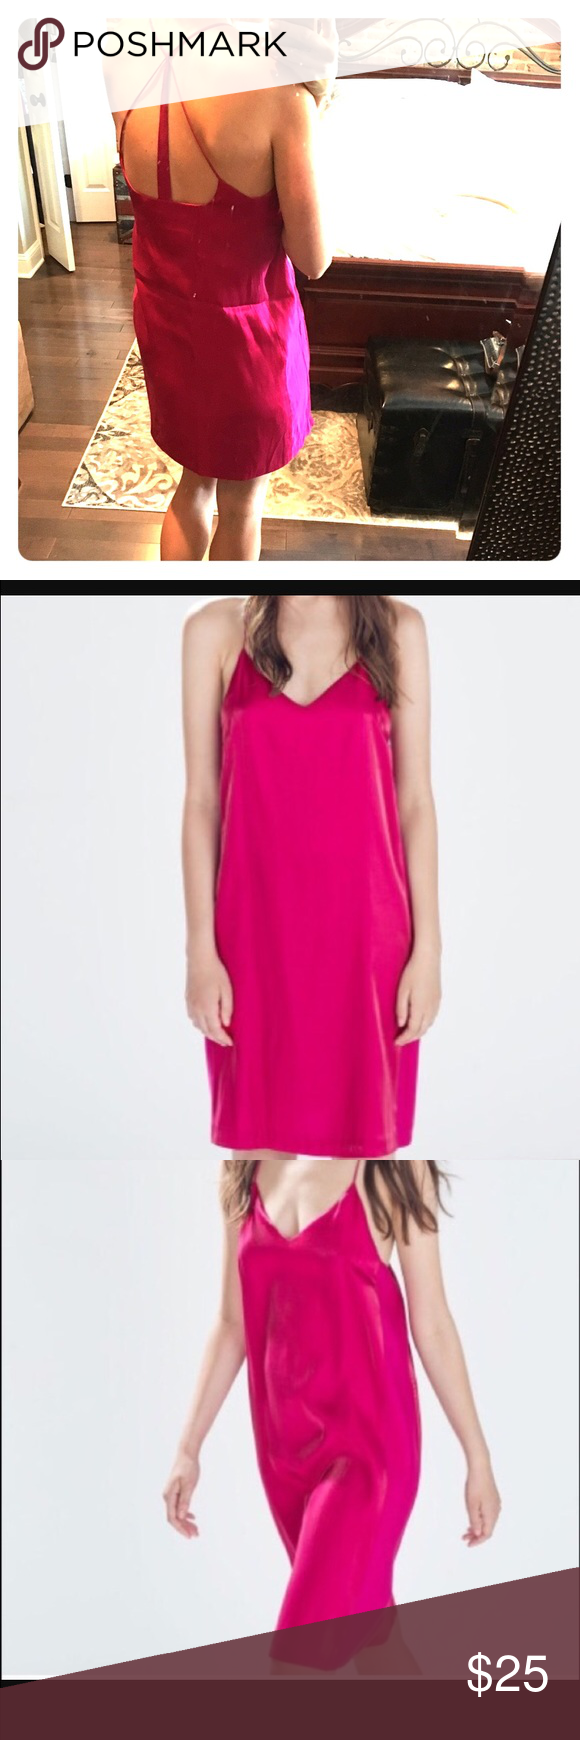 Zara fuchsia sheen slip dress Gorgeous and vibrant dress for day or night. Never worn. Size M. Cross strapped back. Mid thigh length Zara  Dresses Mini